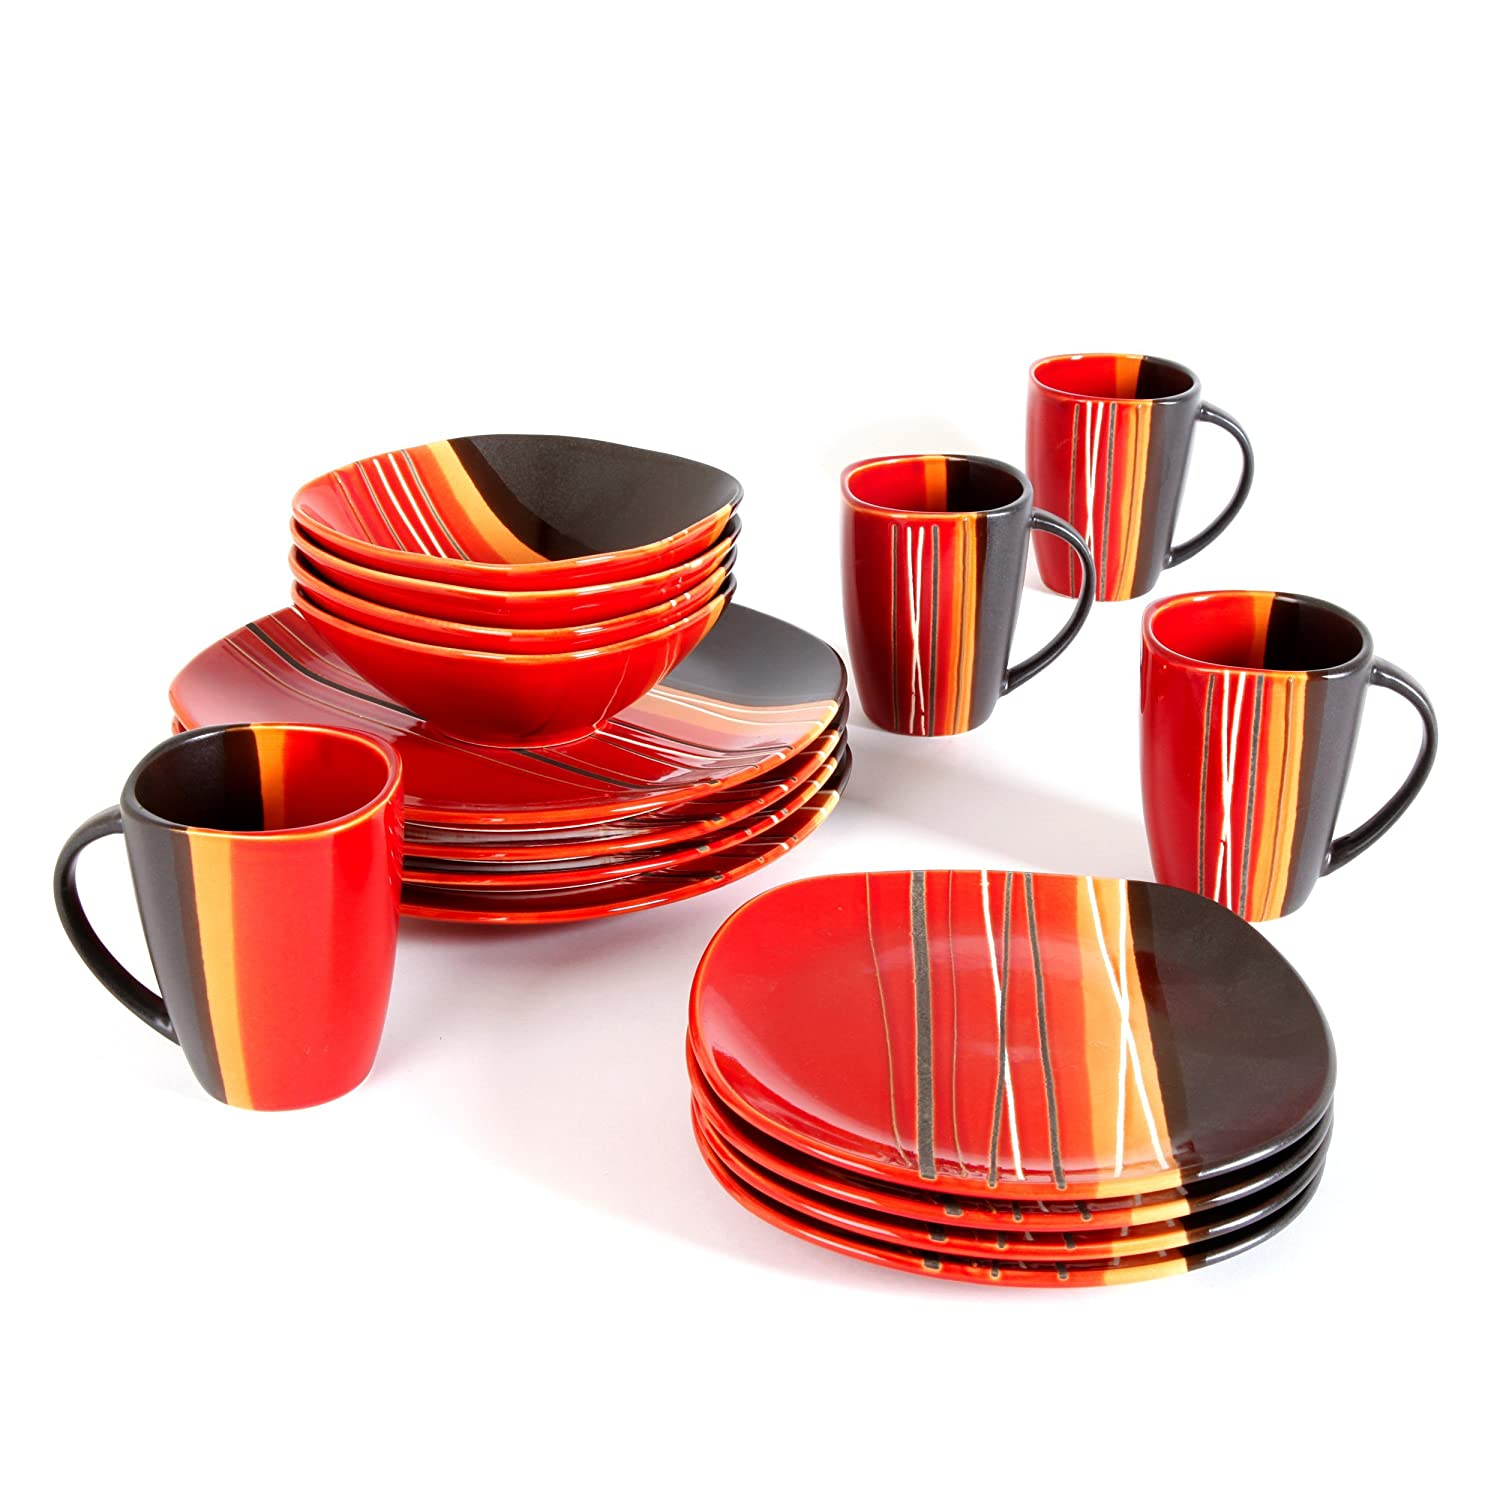 Amazon.com | Home Trends 61590.16rm Bazaar Red 16-Piece Square Dinnerware Set Red/Black/White/Orange Stripes Dinnerware Sets Sc 1 St Amazon.com  sc 1 st  pezcame.com & Square Red Dinnerware Sets \u0026 Red Dinnerware Sets Piece Round ...